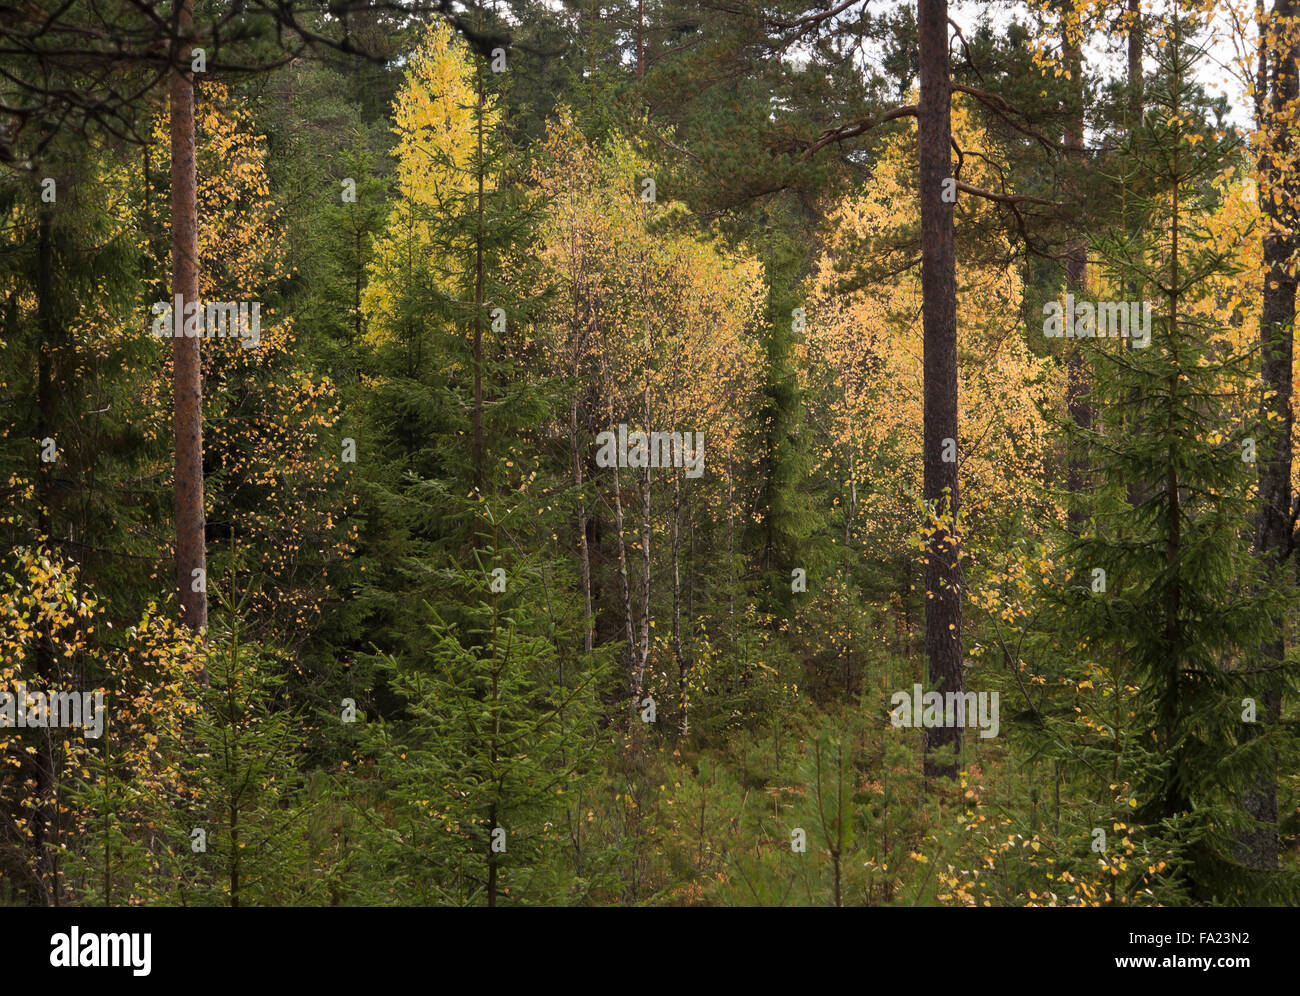 Autumnal scene from the forest in Oslo Norway, yellow leaves and dark green conifers Stock Photo